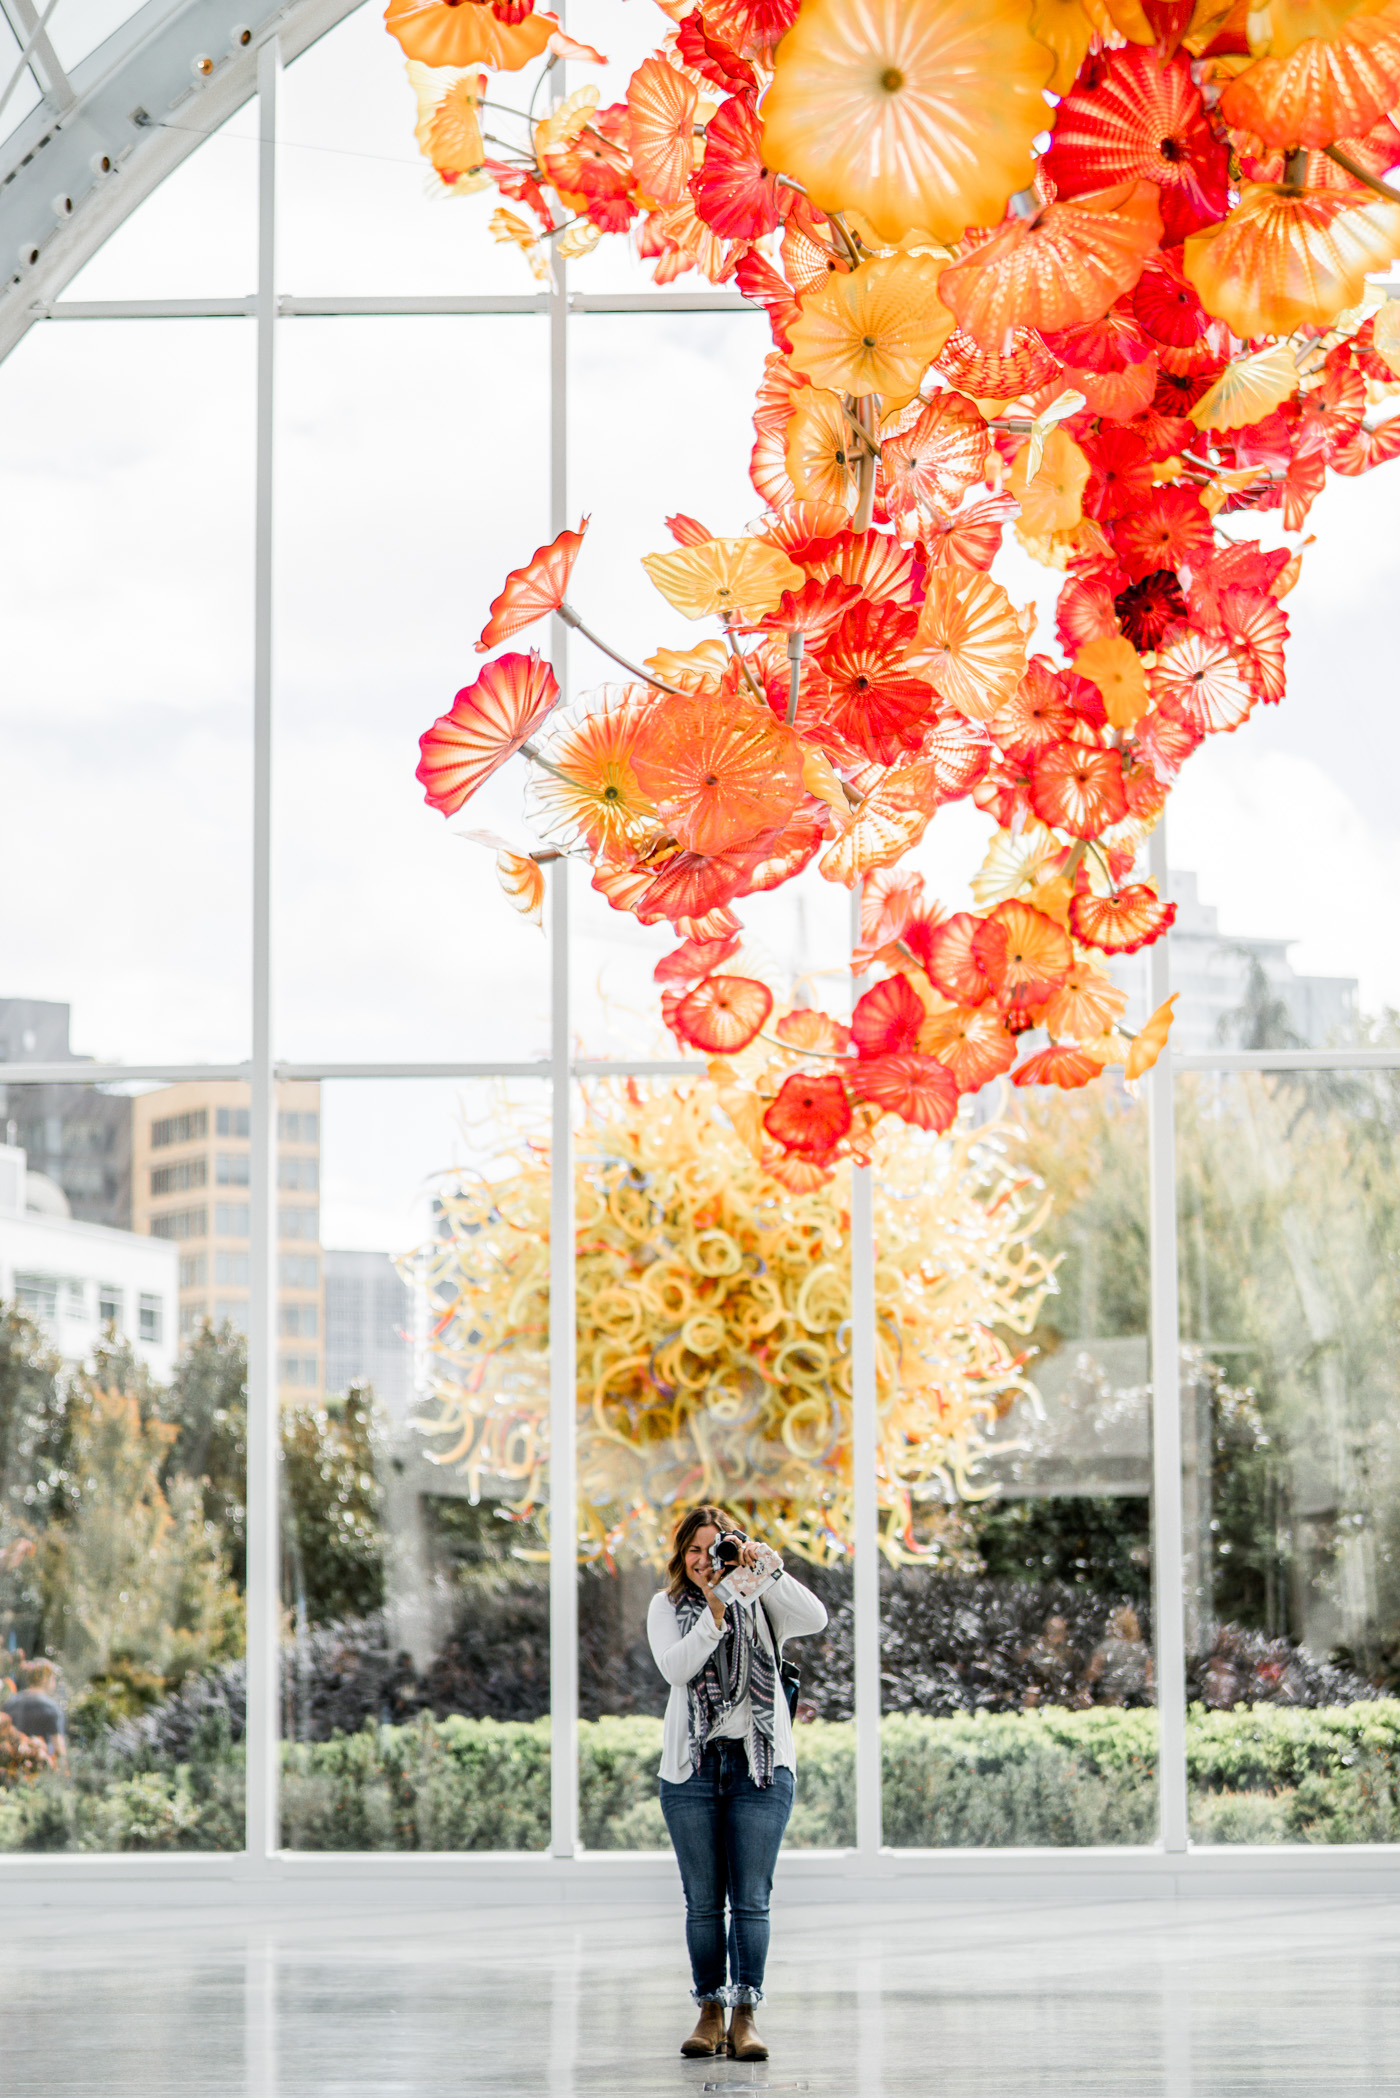 Taking photos at the Chihuly Garden and Glass in Seattle, before visiting the top of the Space Needle